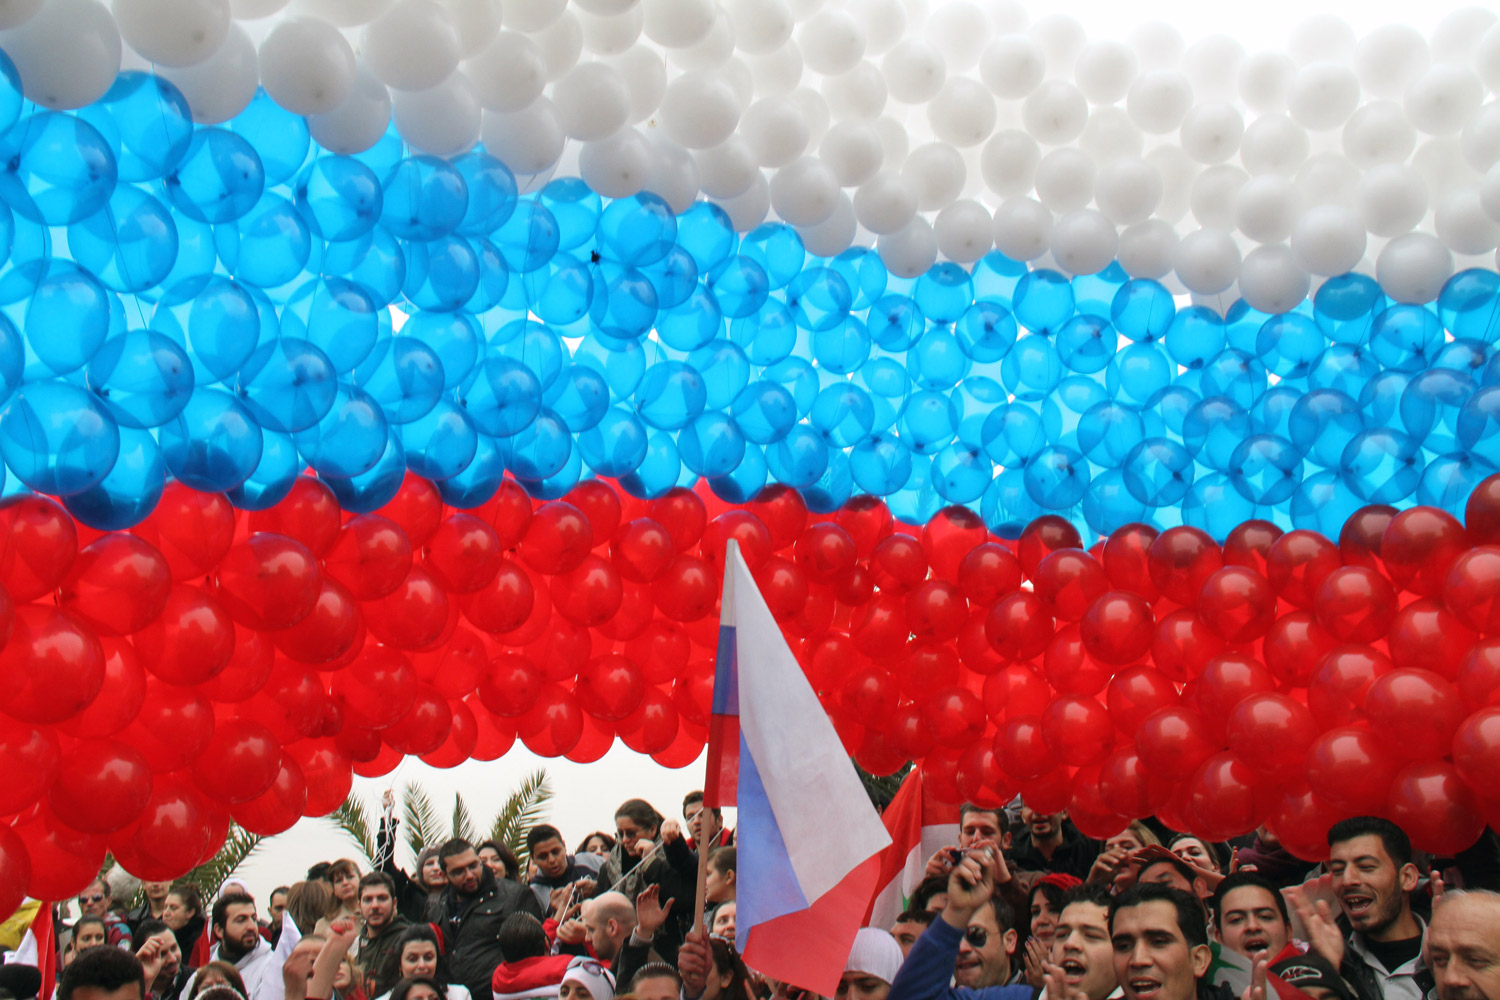 February 7, 2012. Syrians hold balloons combined as a Russian flag to welcome Russian Foreign Minister Sergei Lavrov on the Southern Highway in Damascus.